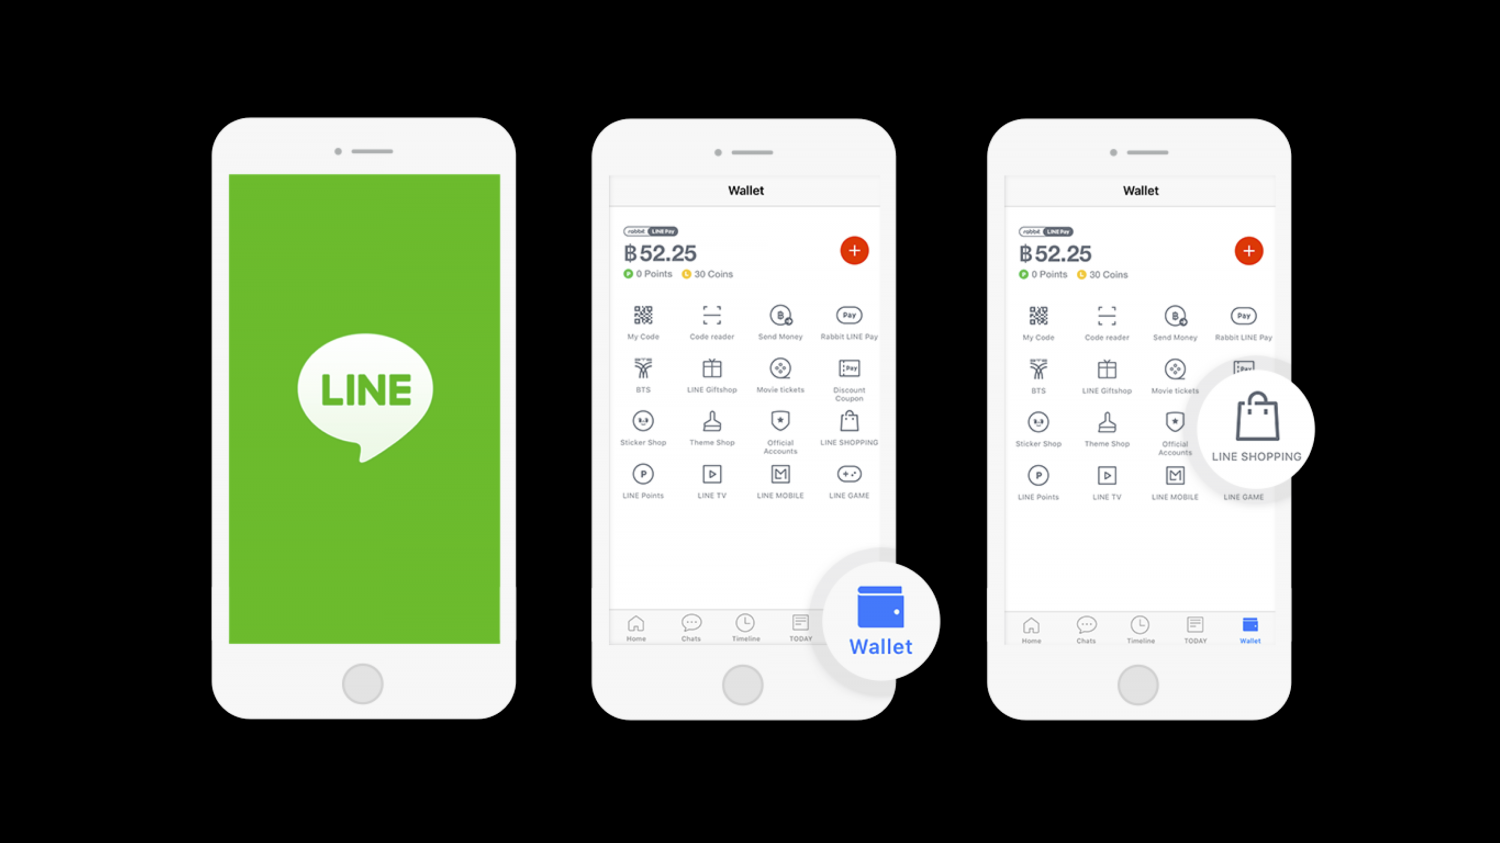 The number of users on the Line Shopping platform is aimed at reaching 8 million by this year, or 18% of the country's 44 million Line users.